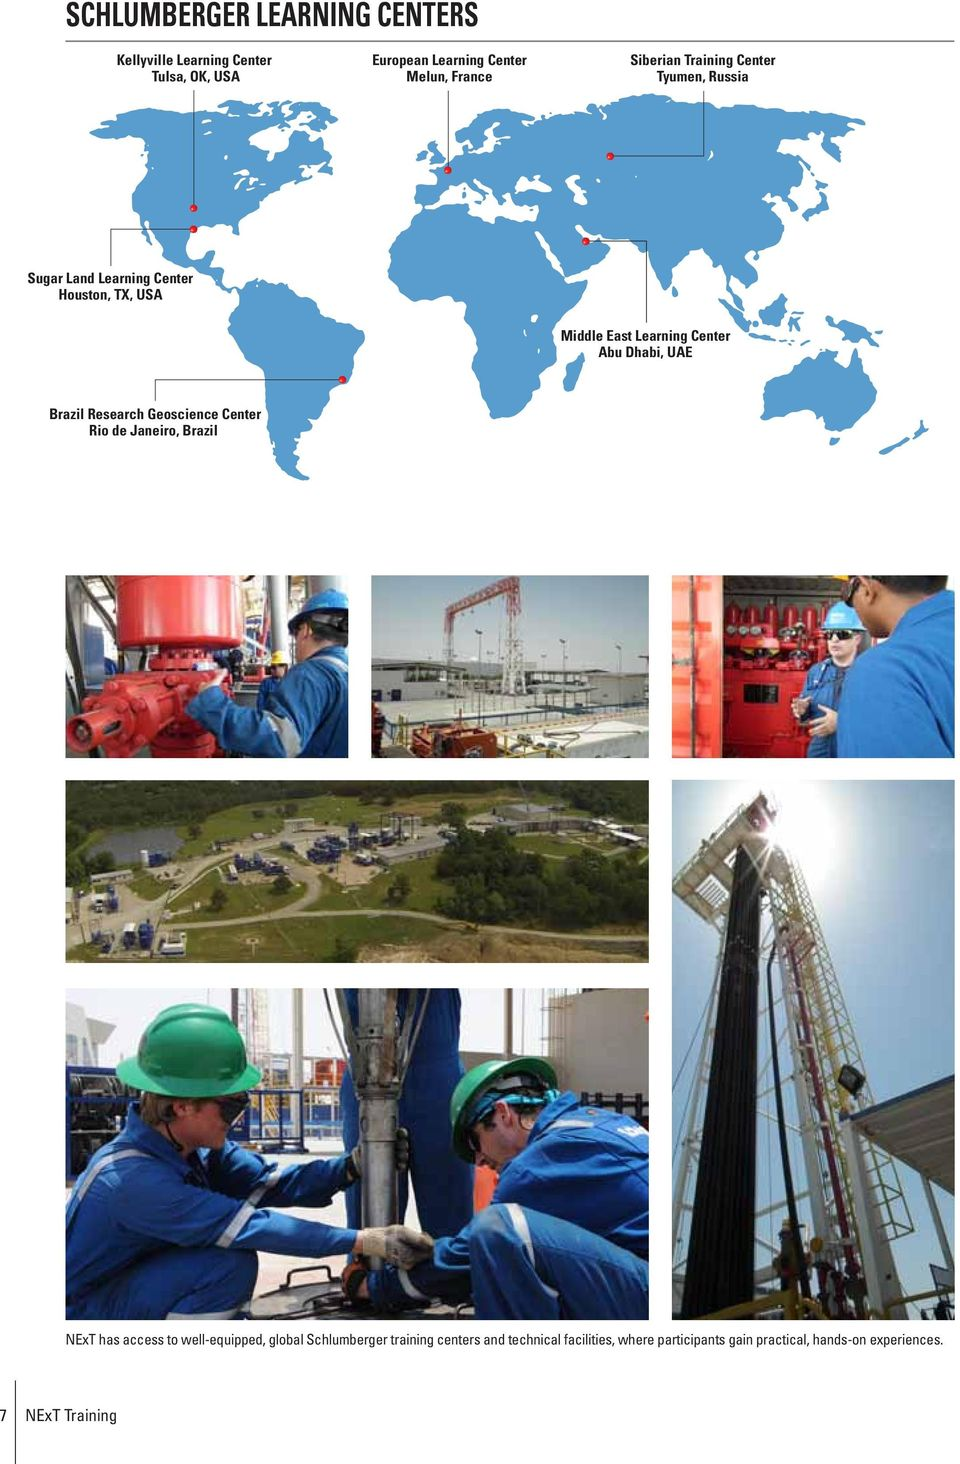 Schlumberger Uae